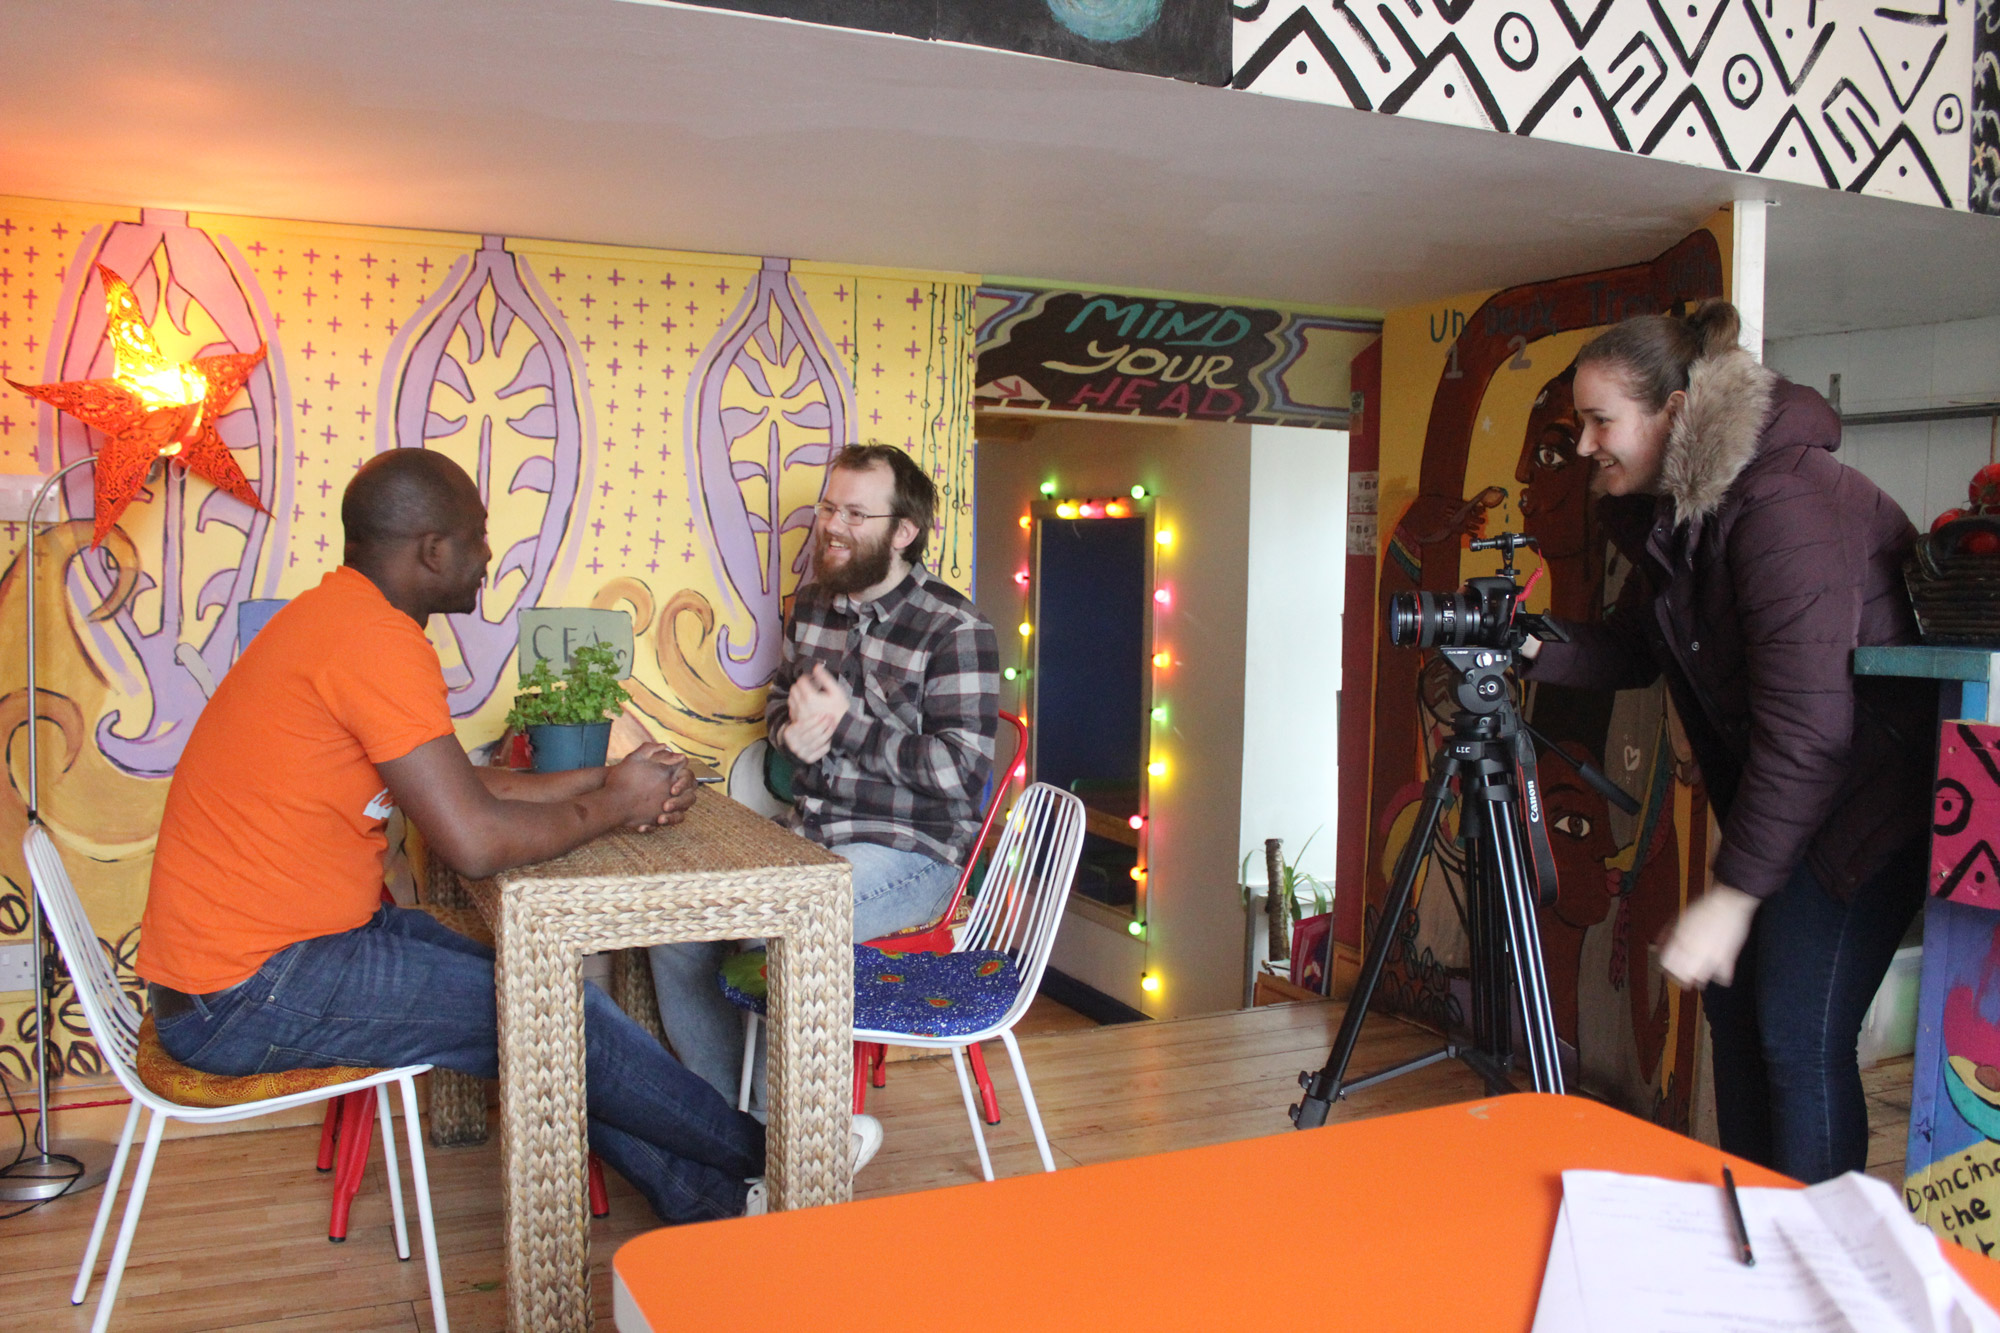 Two men, one client and one student, sit on a table in a cafe while a camera-woman films